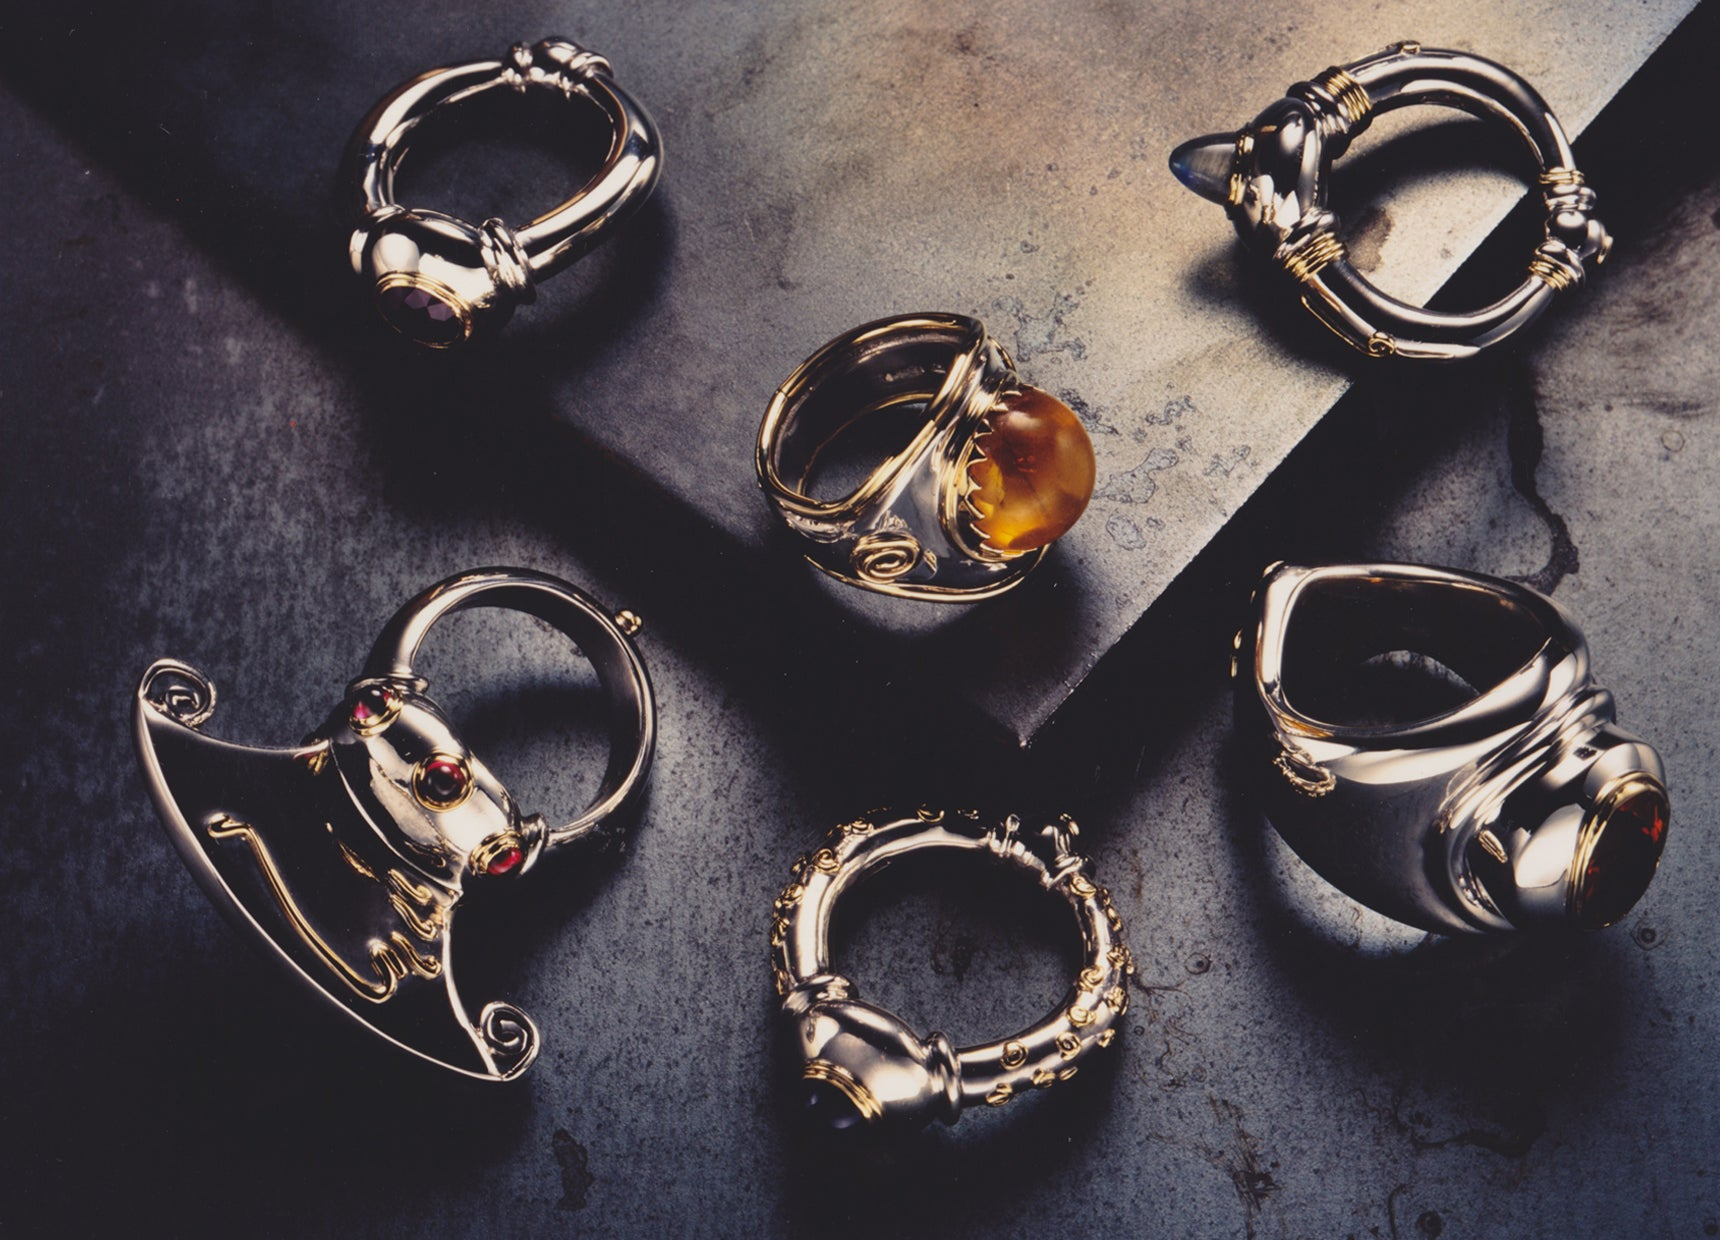 EARLY WORK<br>BLACK ENAMEL AND RESIN COLLECTION<br>1994